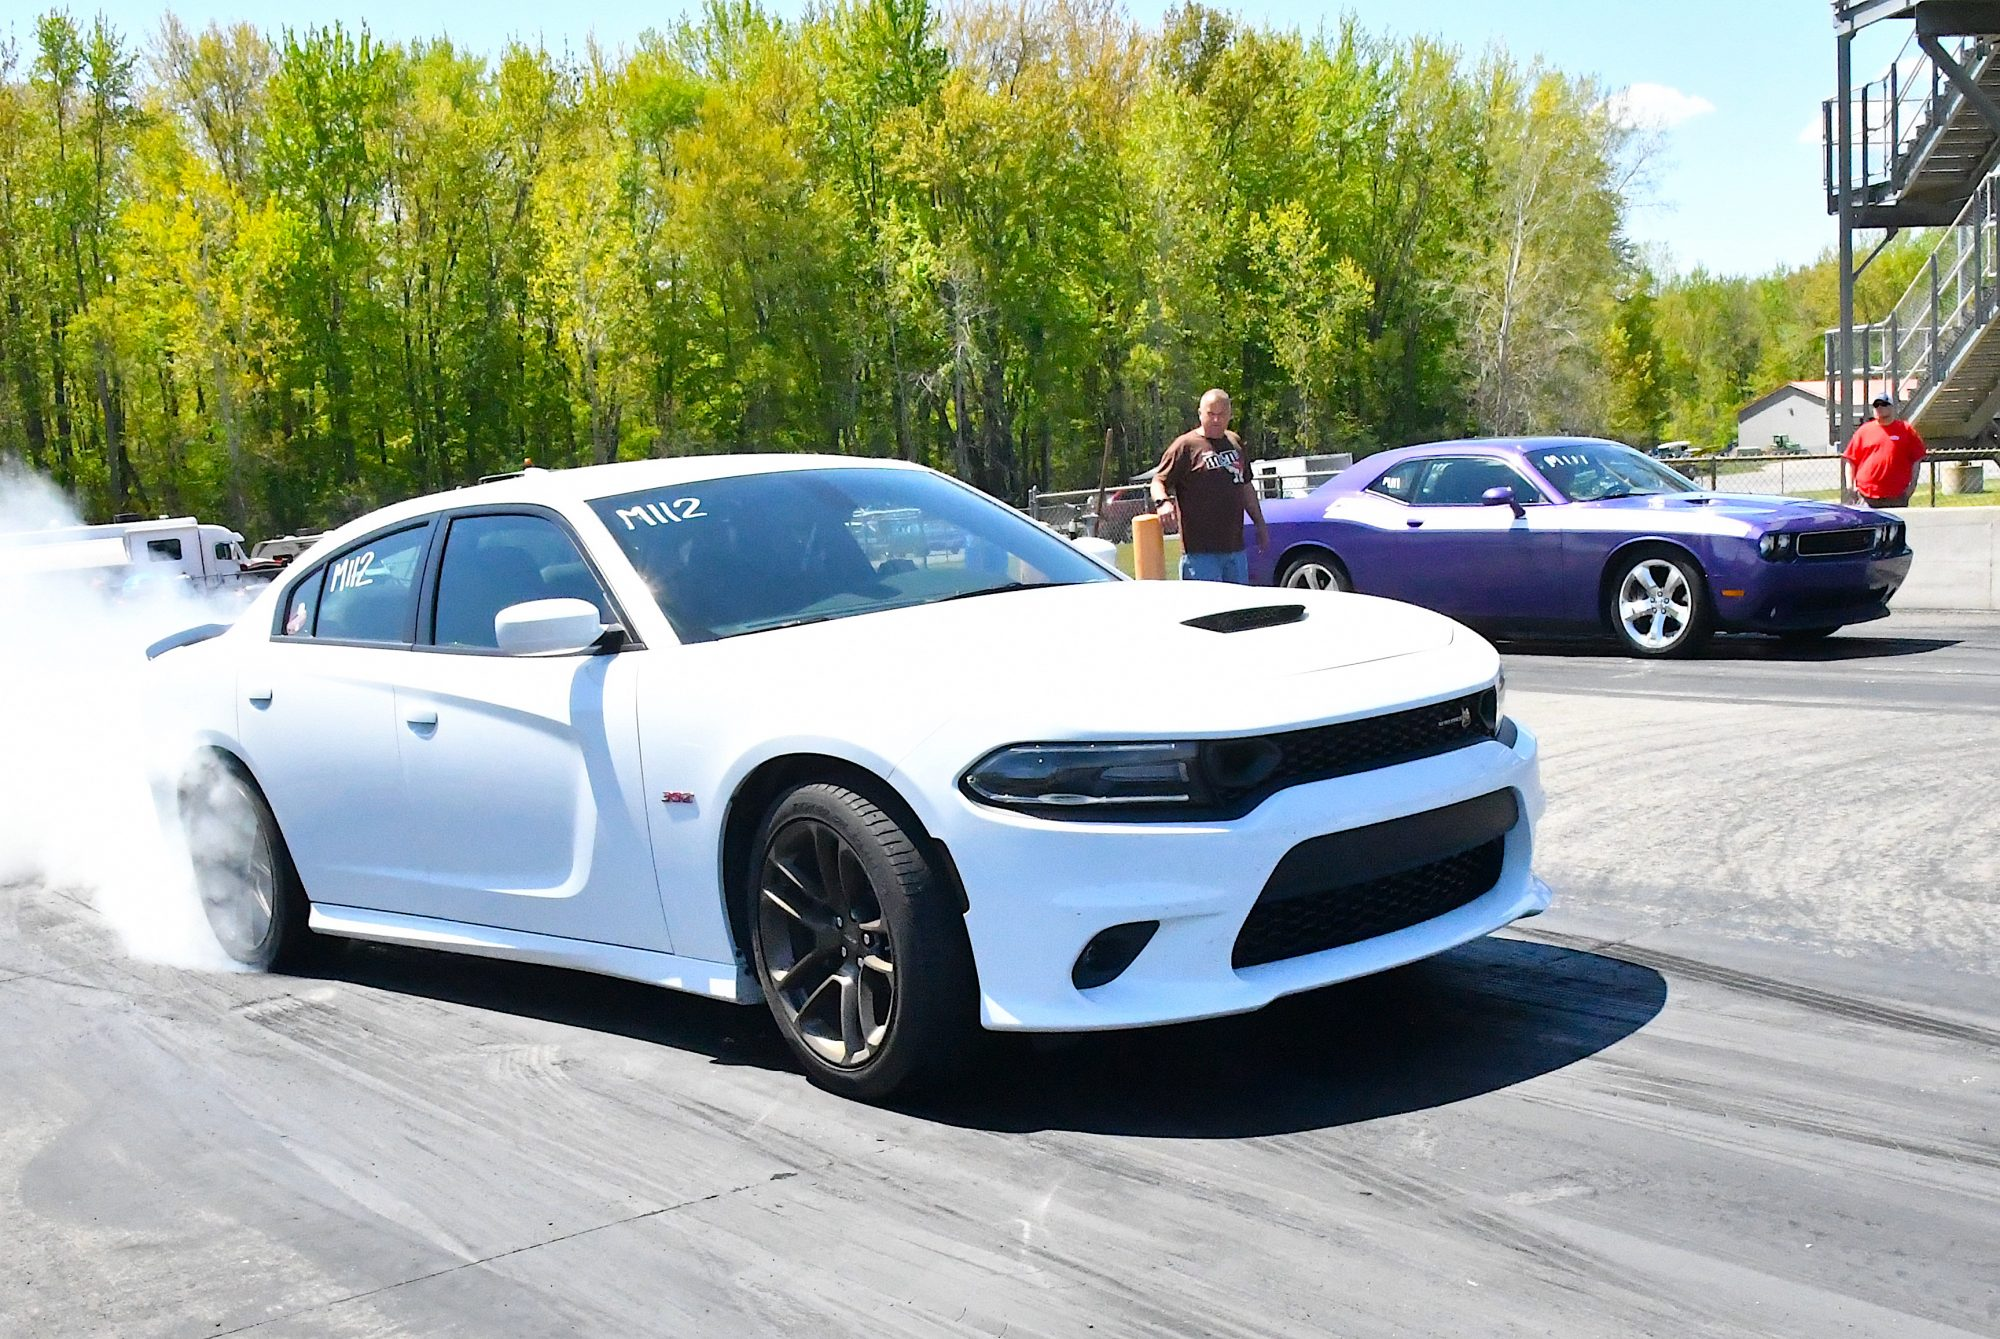 Charger doing a burnout